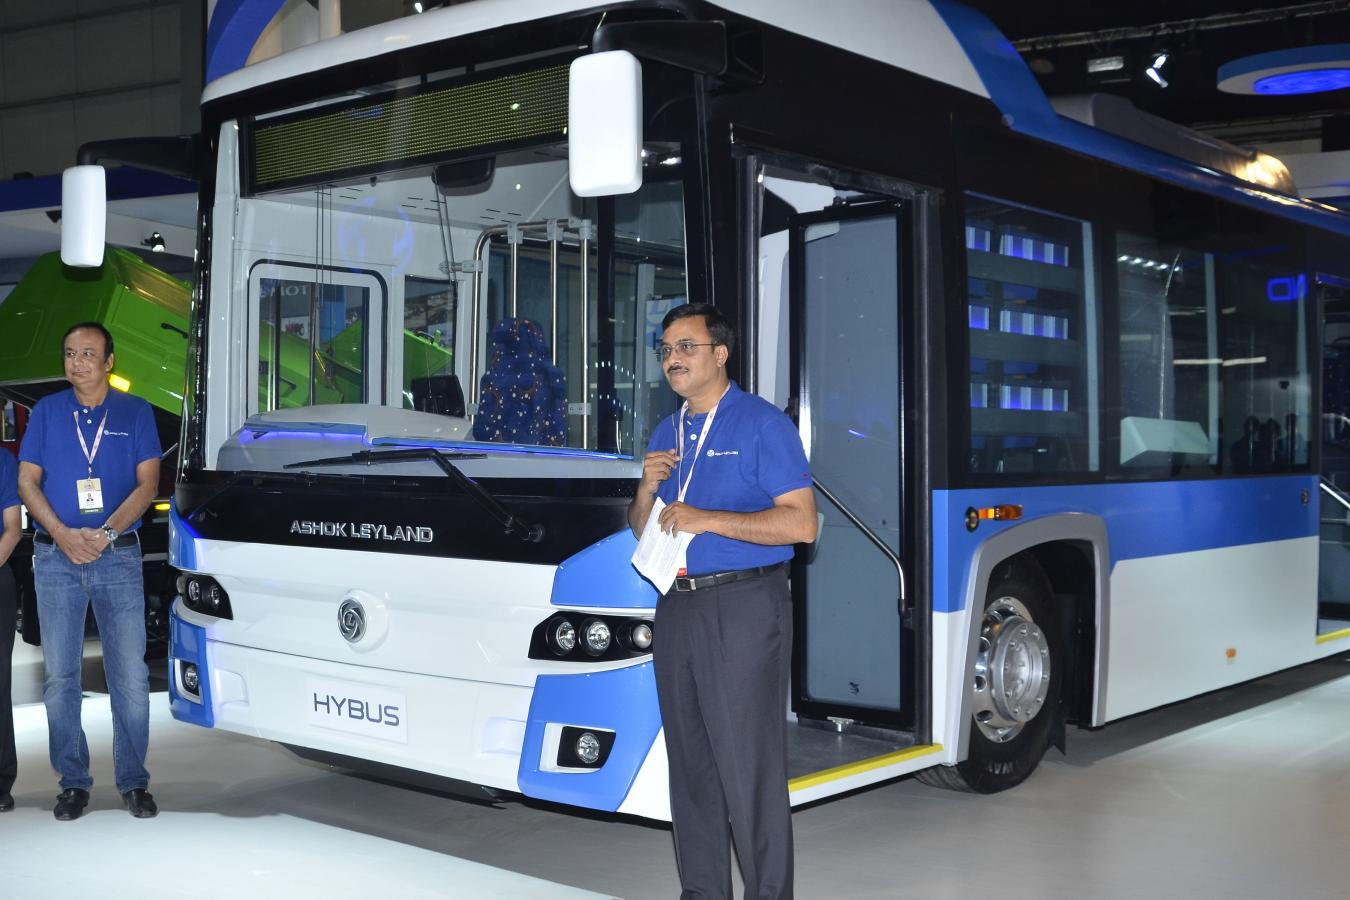 Click image for larger version  Name:Ashok Leyland launches Hybus, India first bus with non-plugin hybrid technology.jpg Views:1 Size:135.3 KB ID:1817